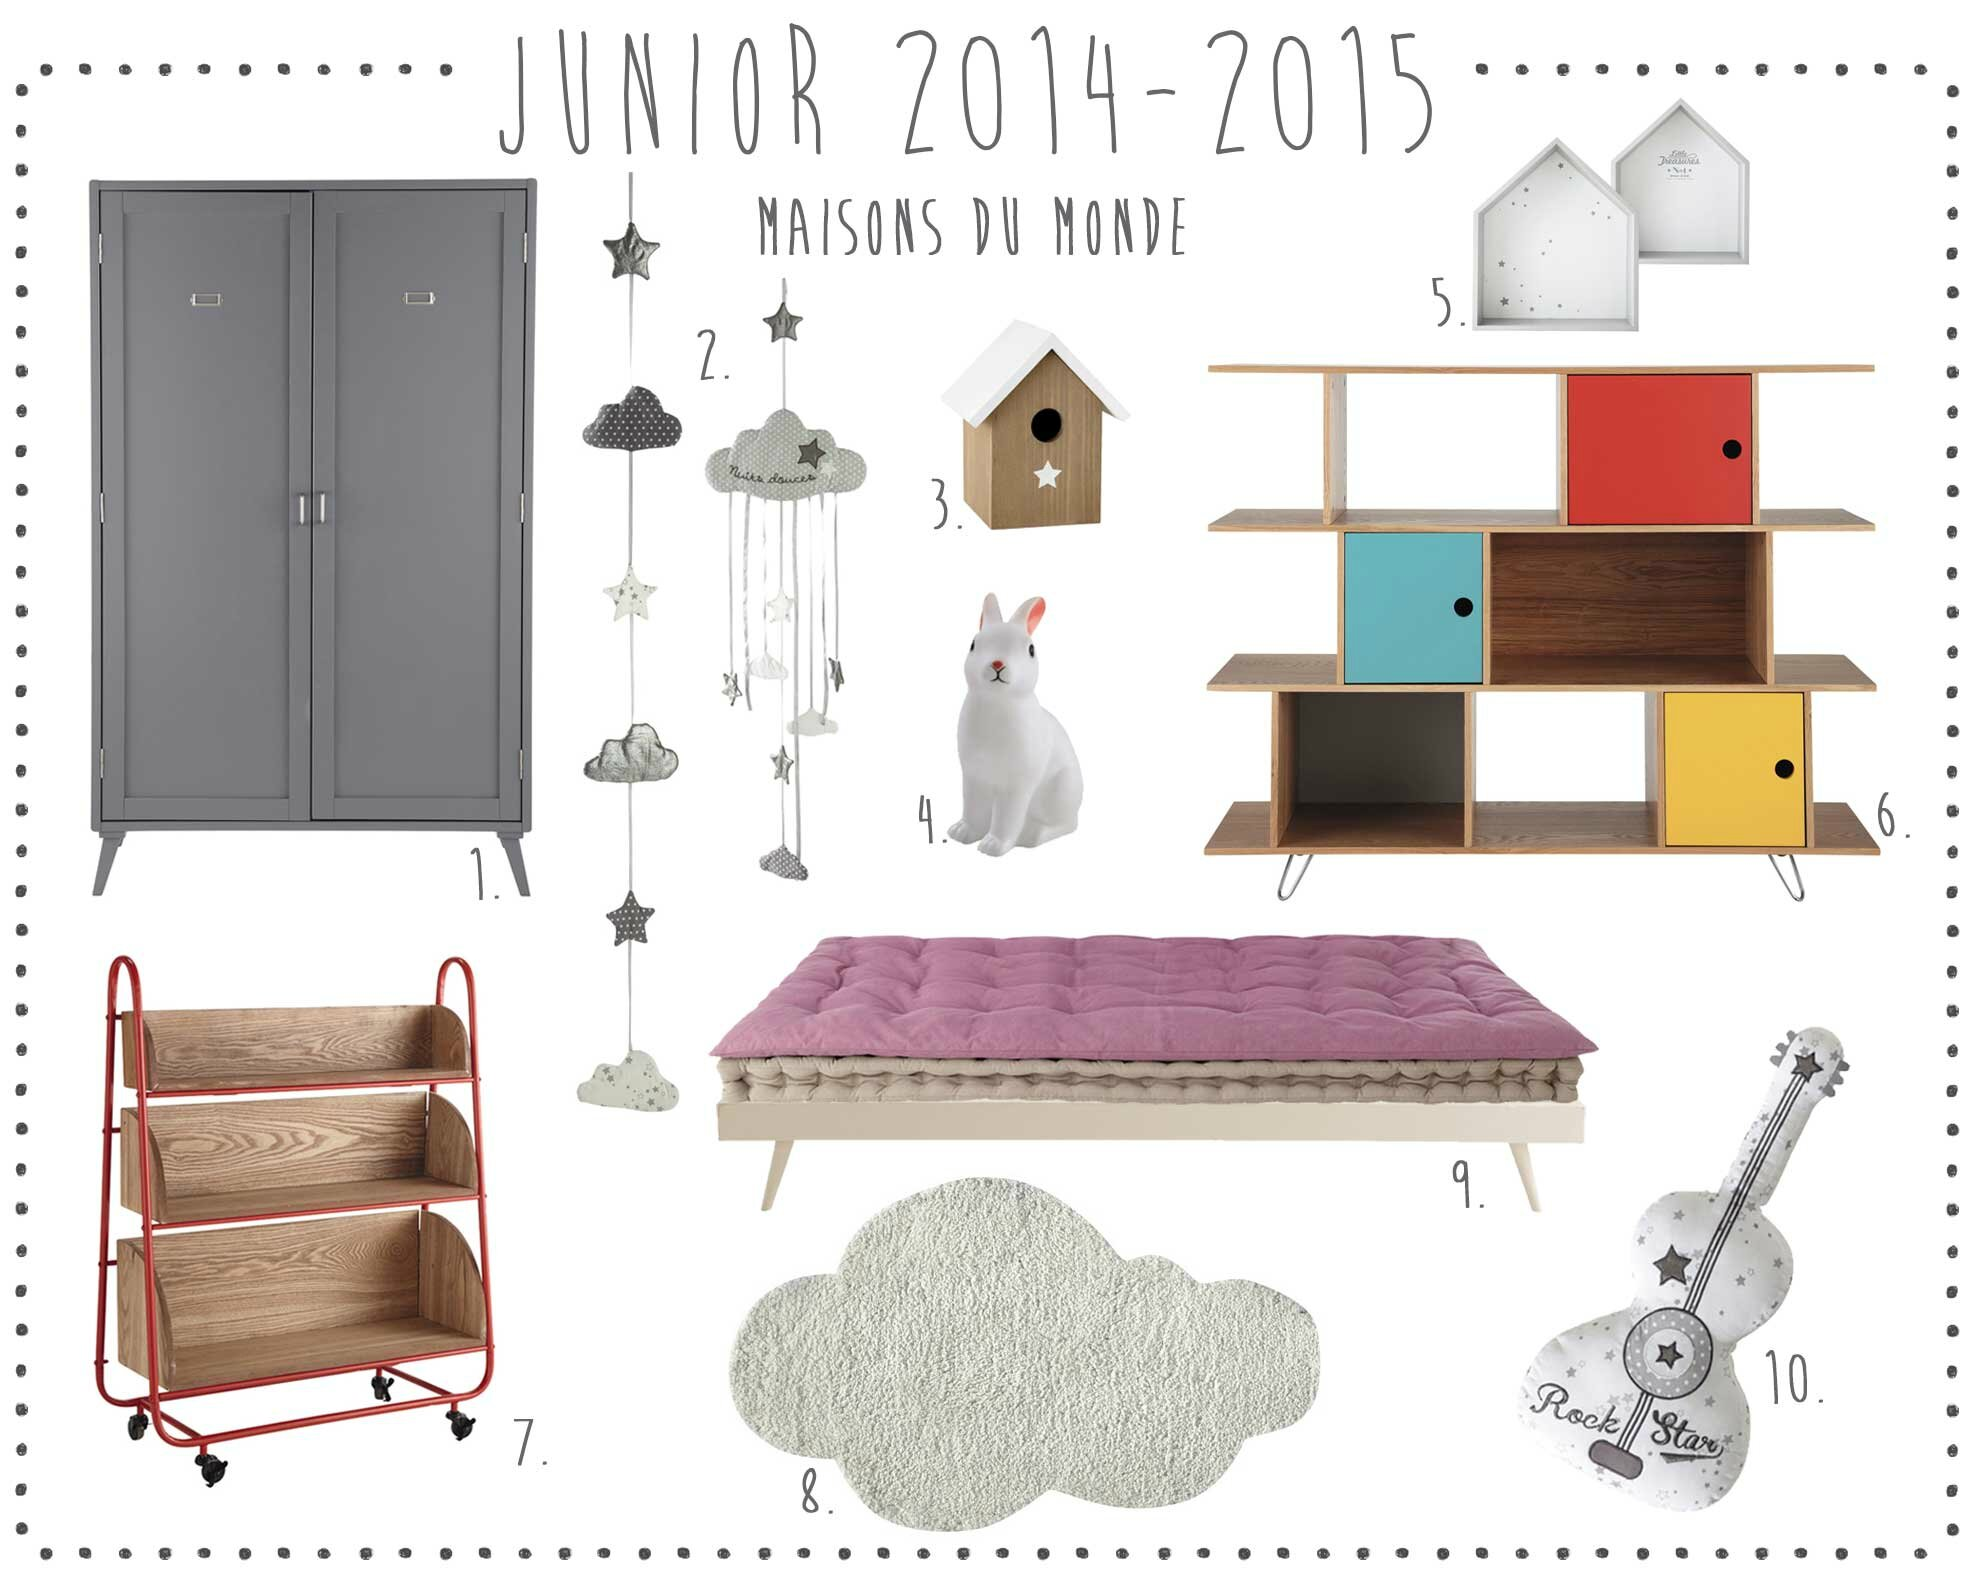 ma wishlist du catalogue junior maisons du monde 2014 2015. Black Bedroom Furniture Sets. Home Design Ideas